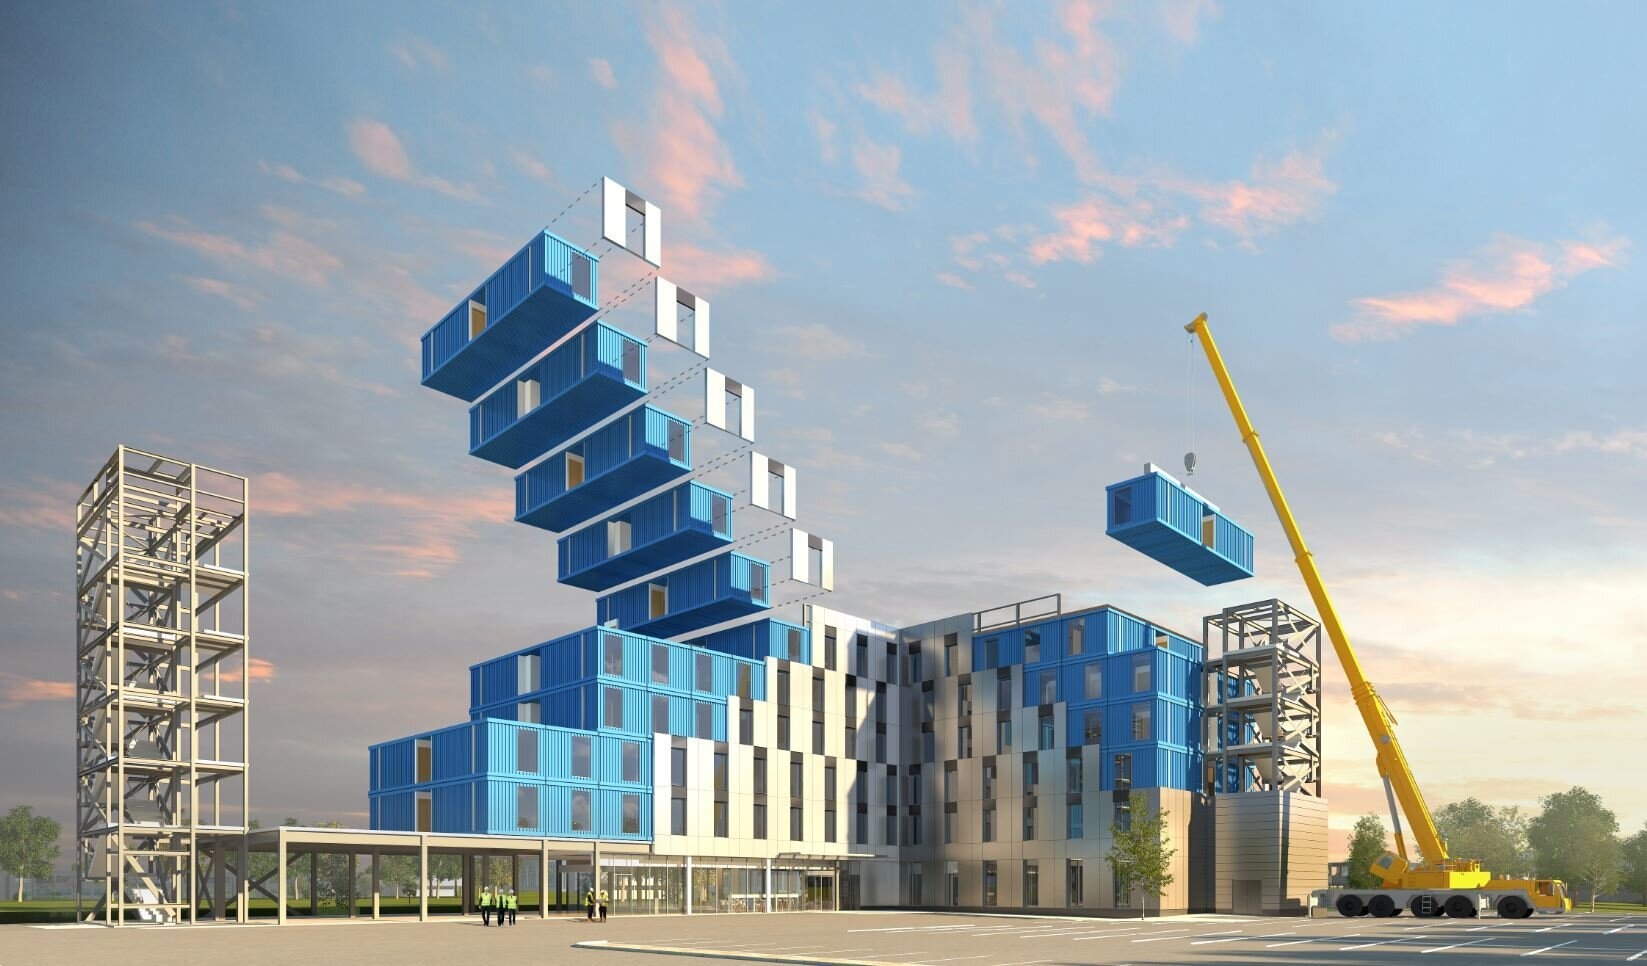 MODULAR CONSTRUCTION - The future of Ground Up Development that saves times, is safer and built with better quality.